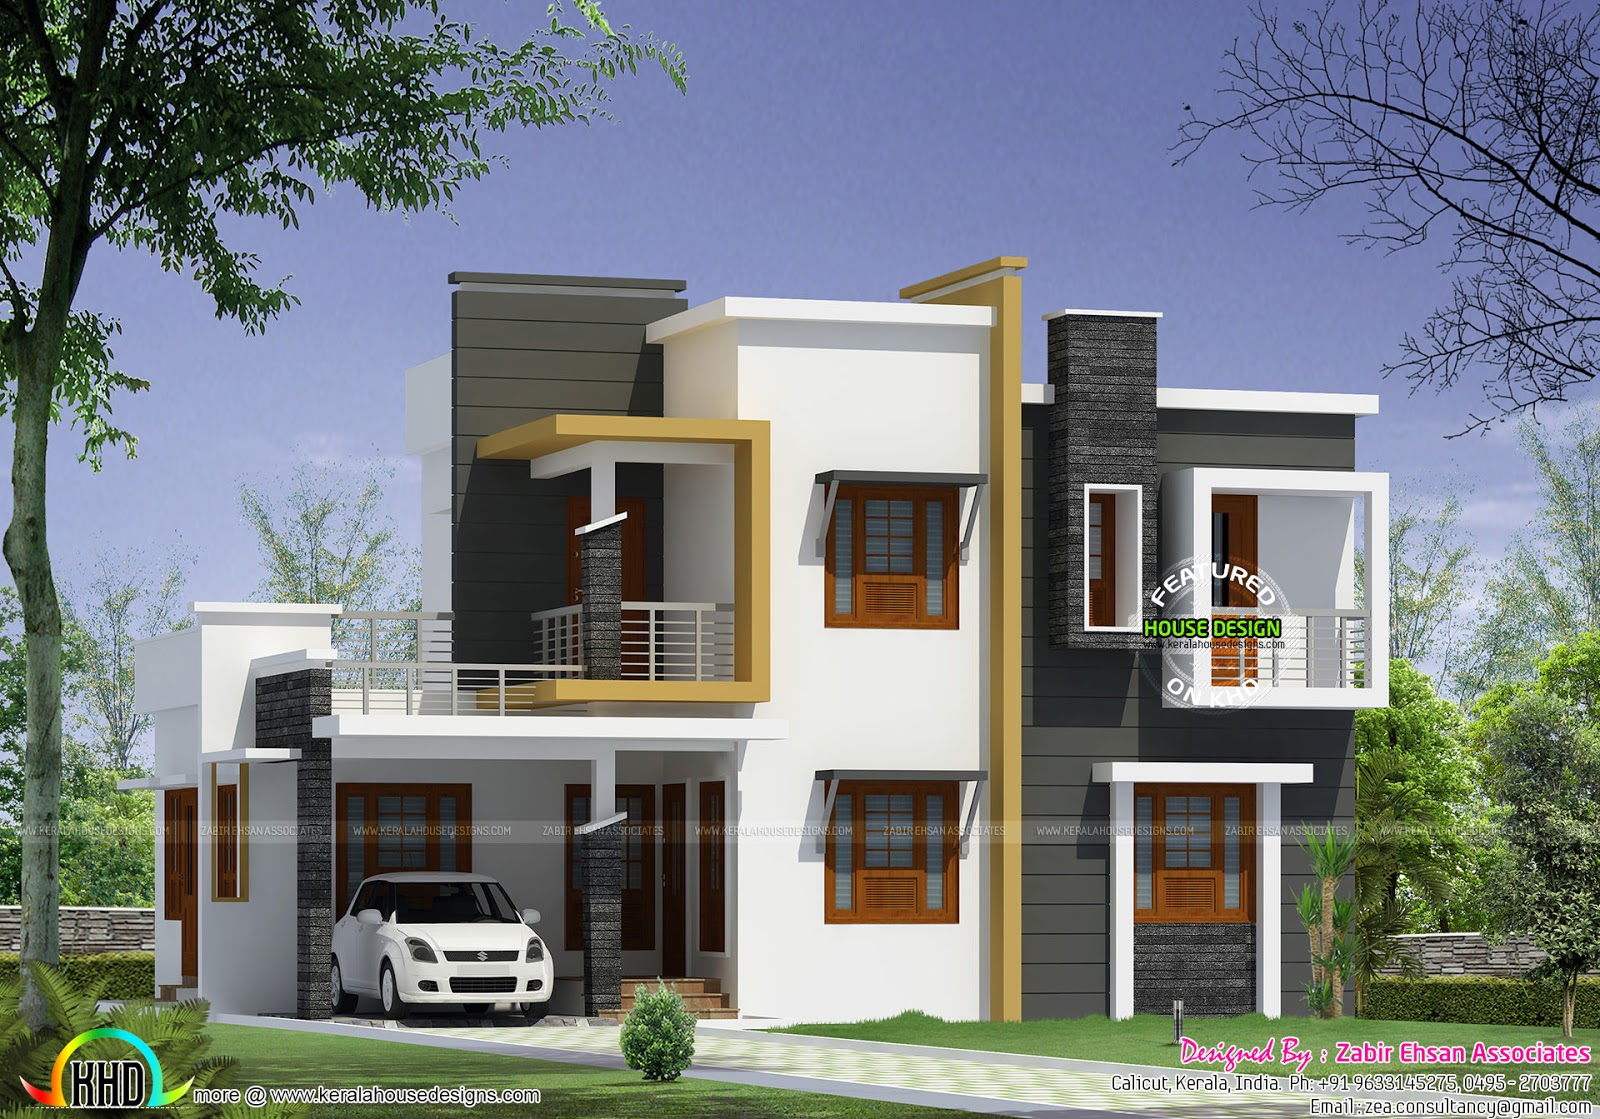 Box type modern house plan kerala home design and floor plans Home architecture types